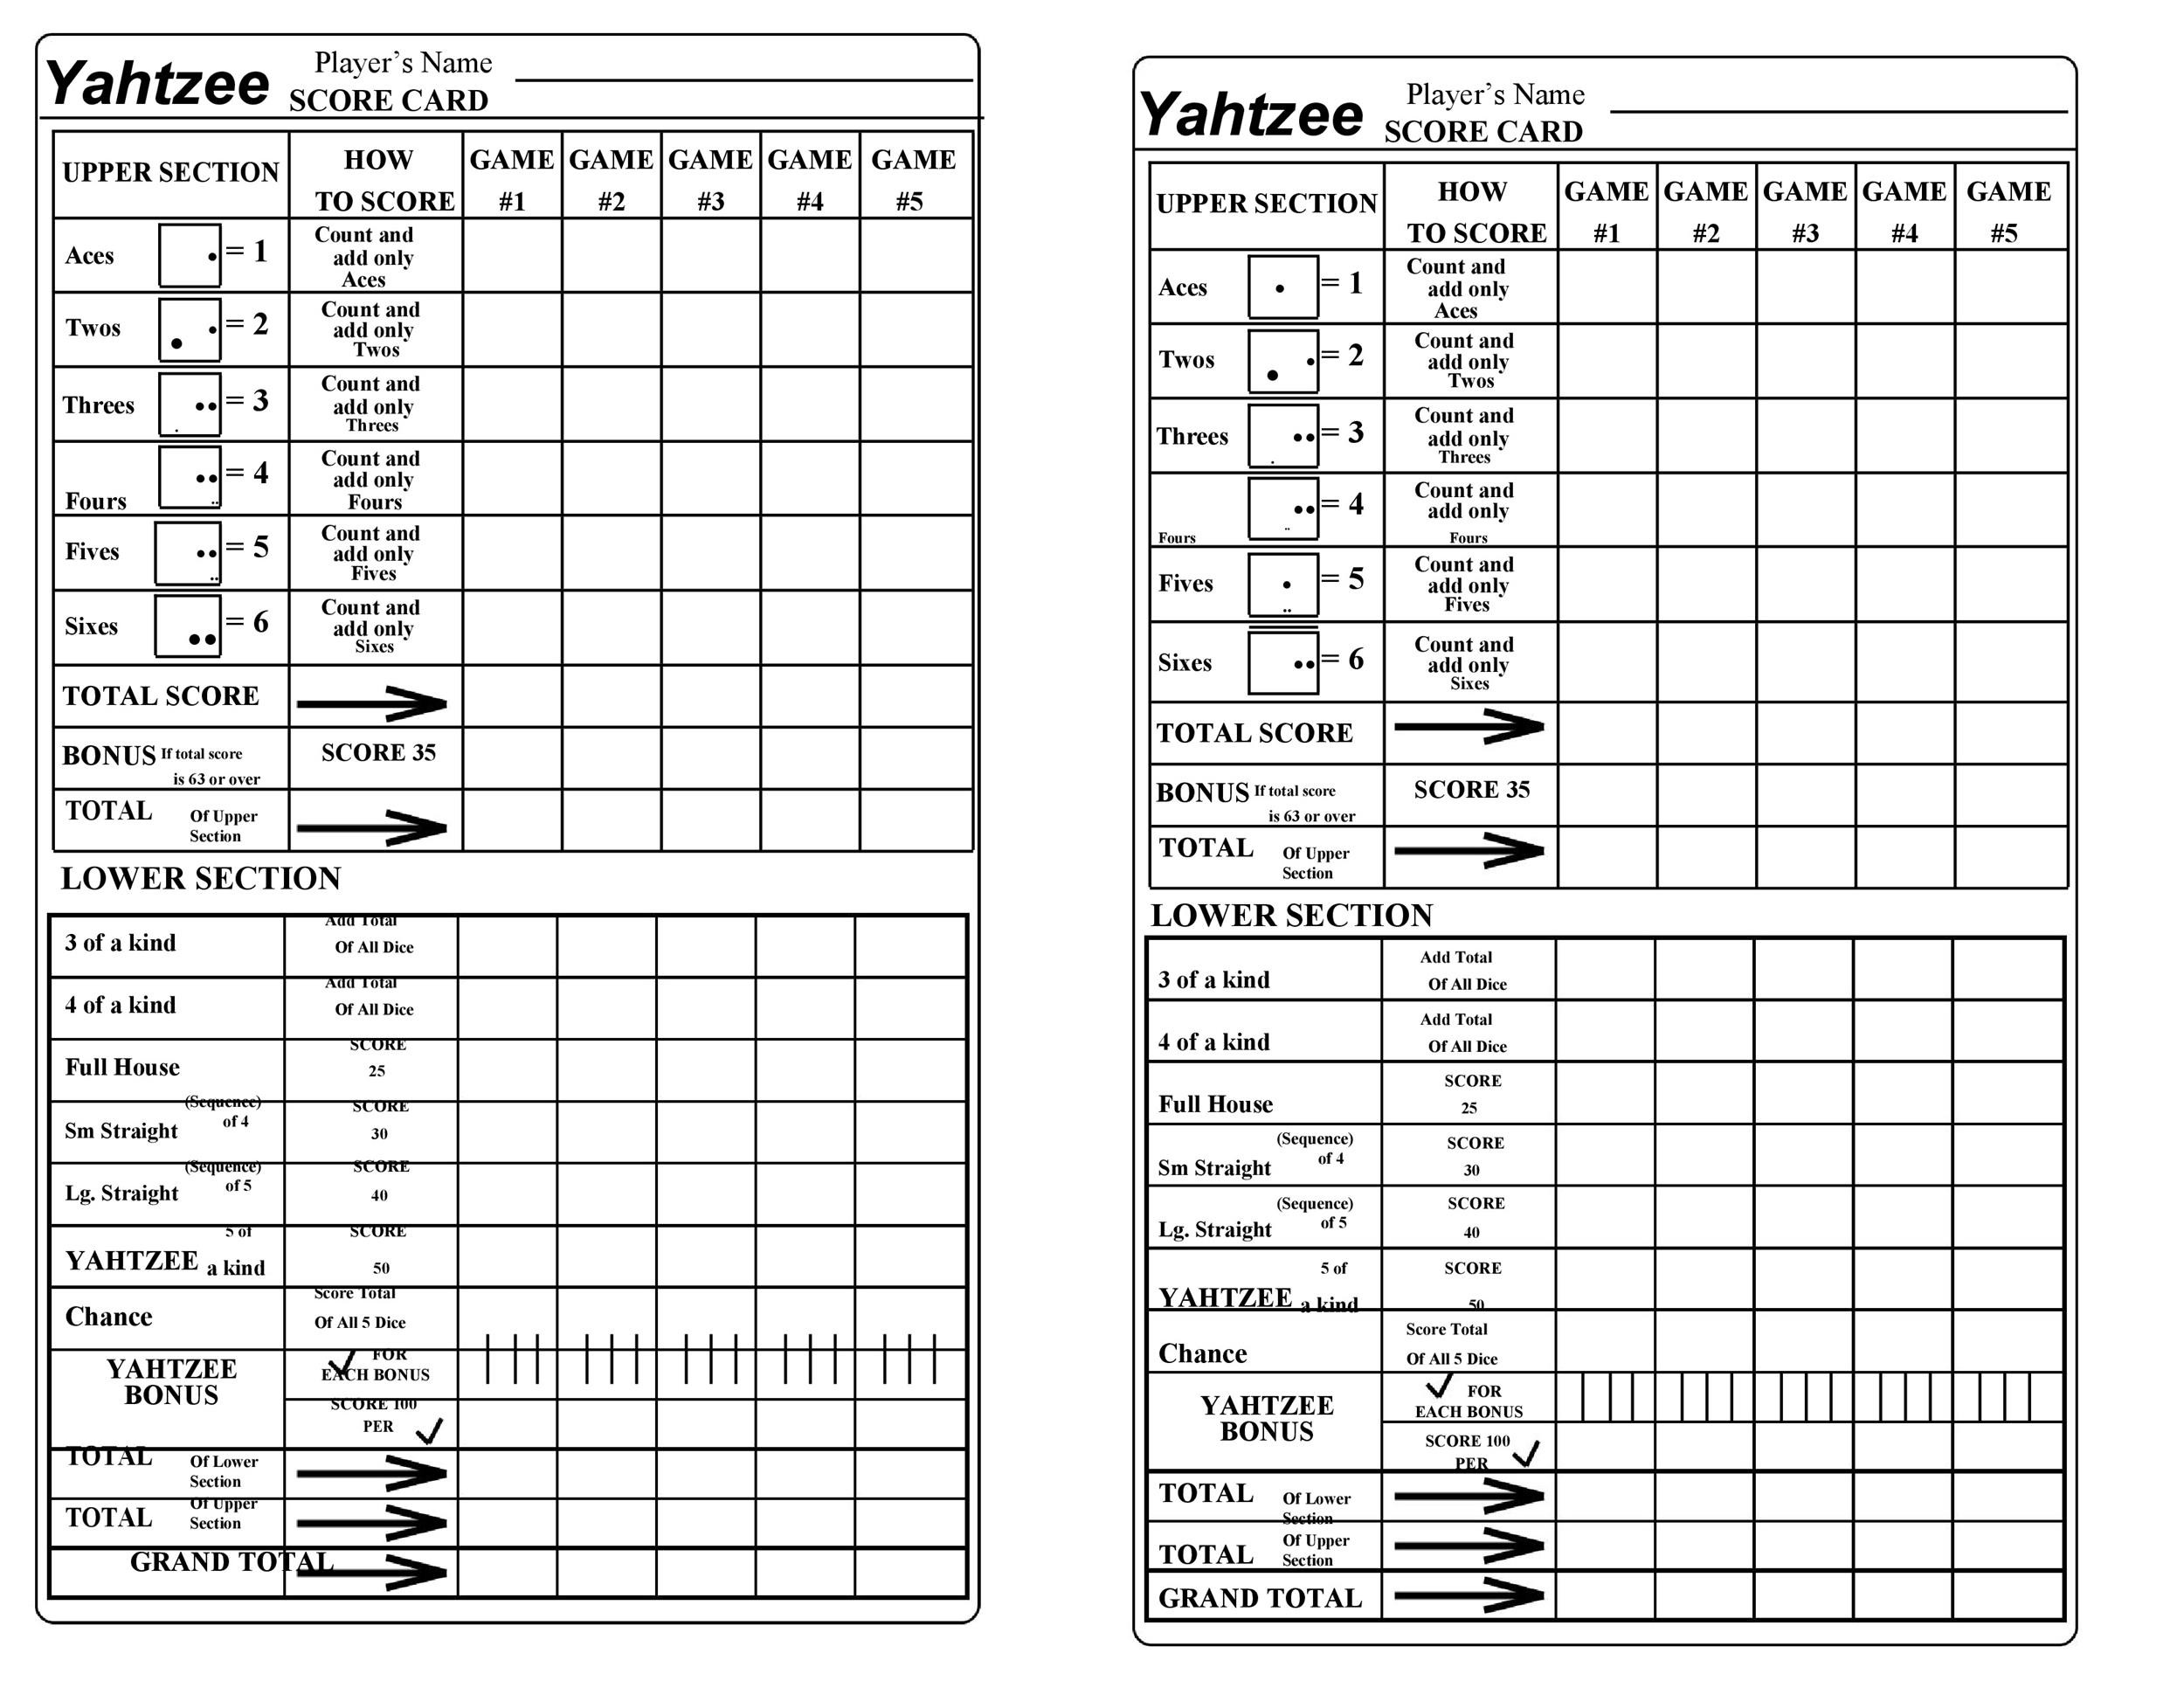 photograph relating to Yahtzee Score Sheet Printable called 28 Printable Yahtzee Rating Sheets Playing cards (101% Free of charge) ᐅ